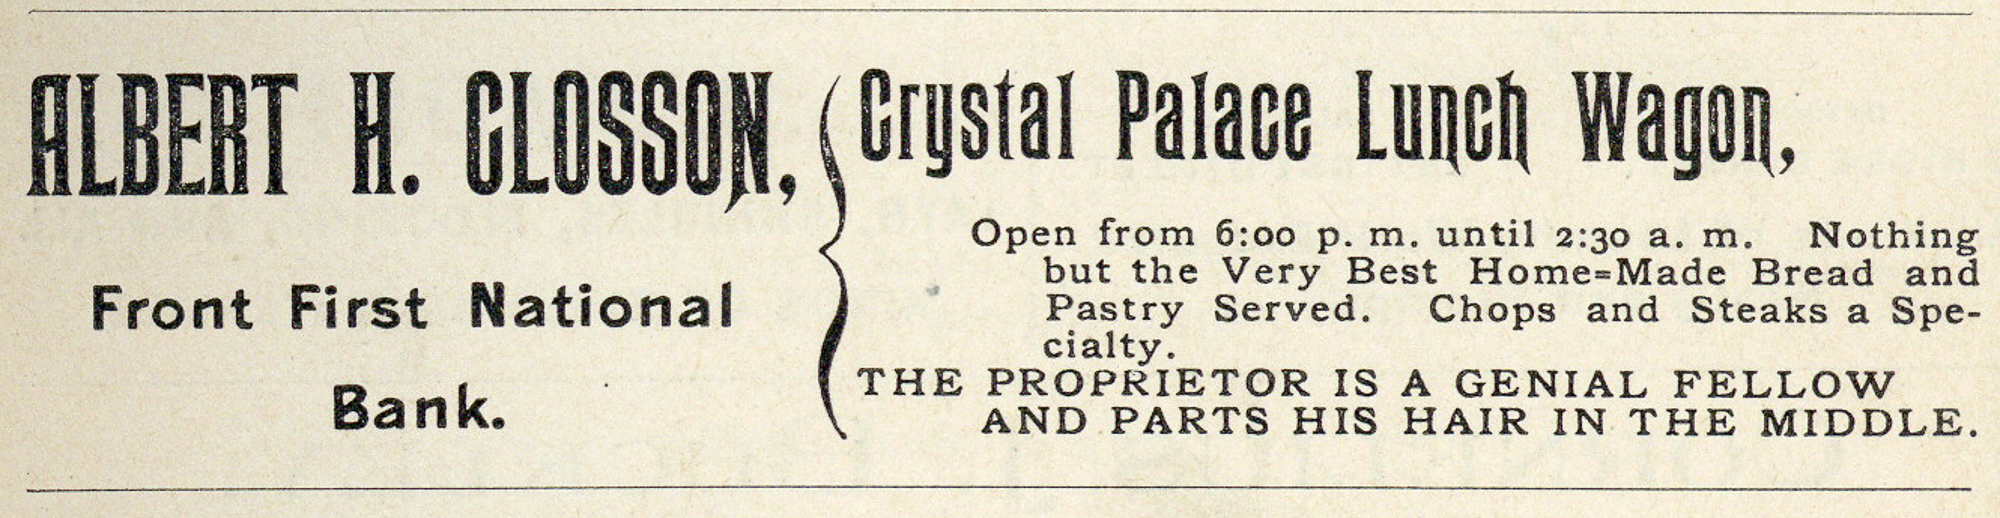 Courtesy of    The Chapman Museum   , from the 1897-98 Glens Falls Business Directory.